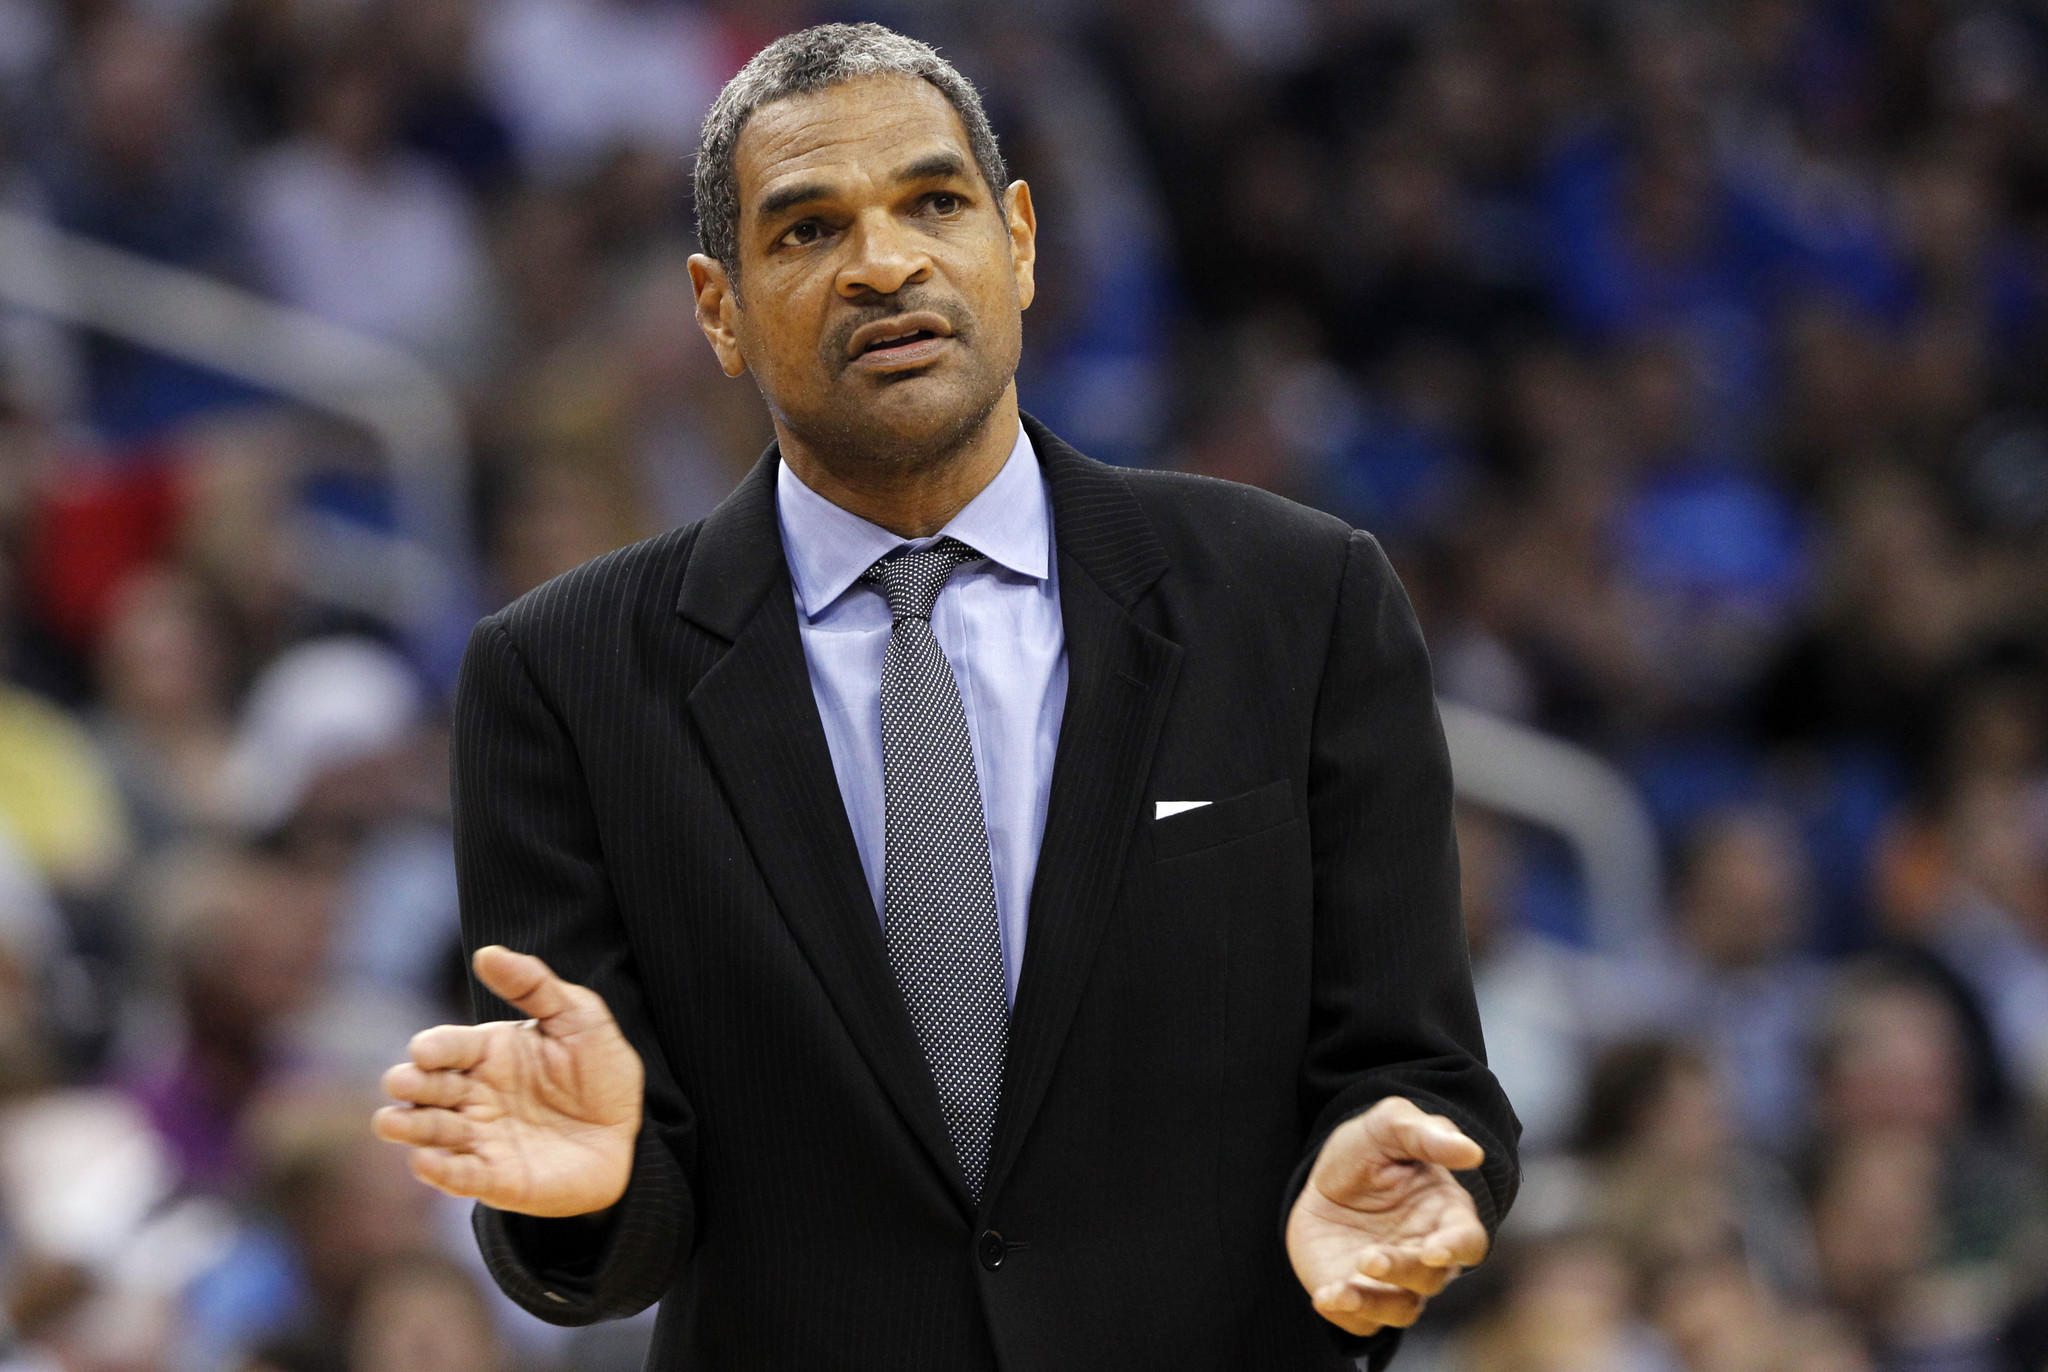 Detroit Pistons head coach Maurice Cheeks reacts from the sidelines against the Orlando Magic during the second quarter at Amway Center.